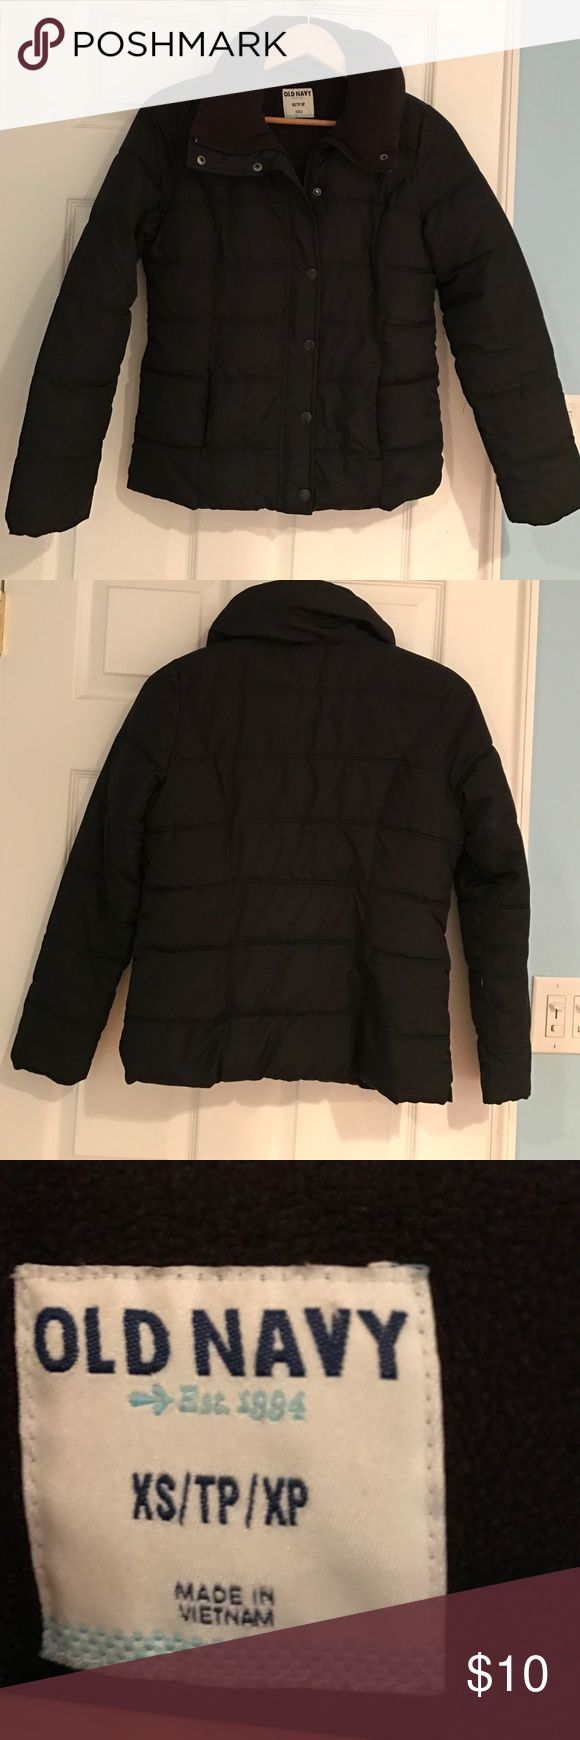 Old Navy women's puffer jacket size XS Old Navy women's puffer jacket size small. In good condition except a few buttons have some scratching to them. Not very noticeable when on. Jacket is both zip up and buttons. Old Navy Jackets & Coats Puffers